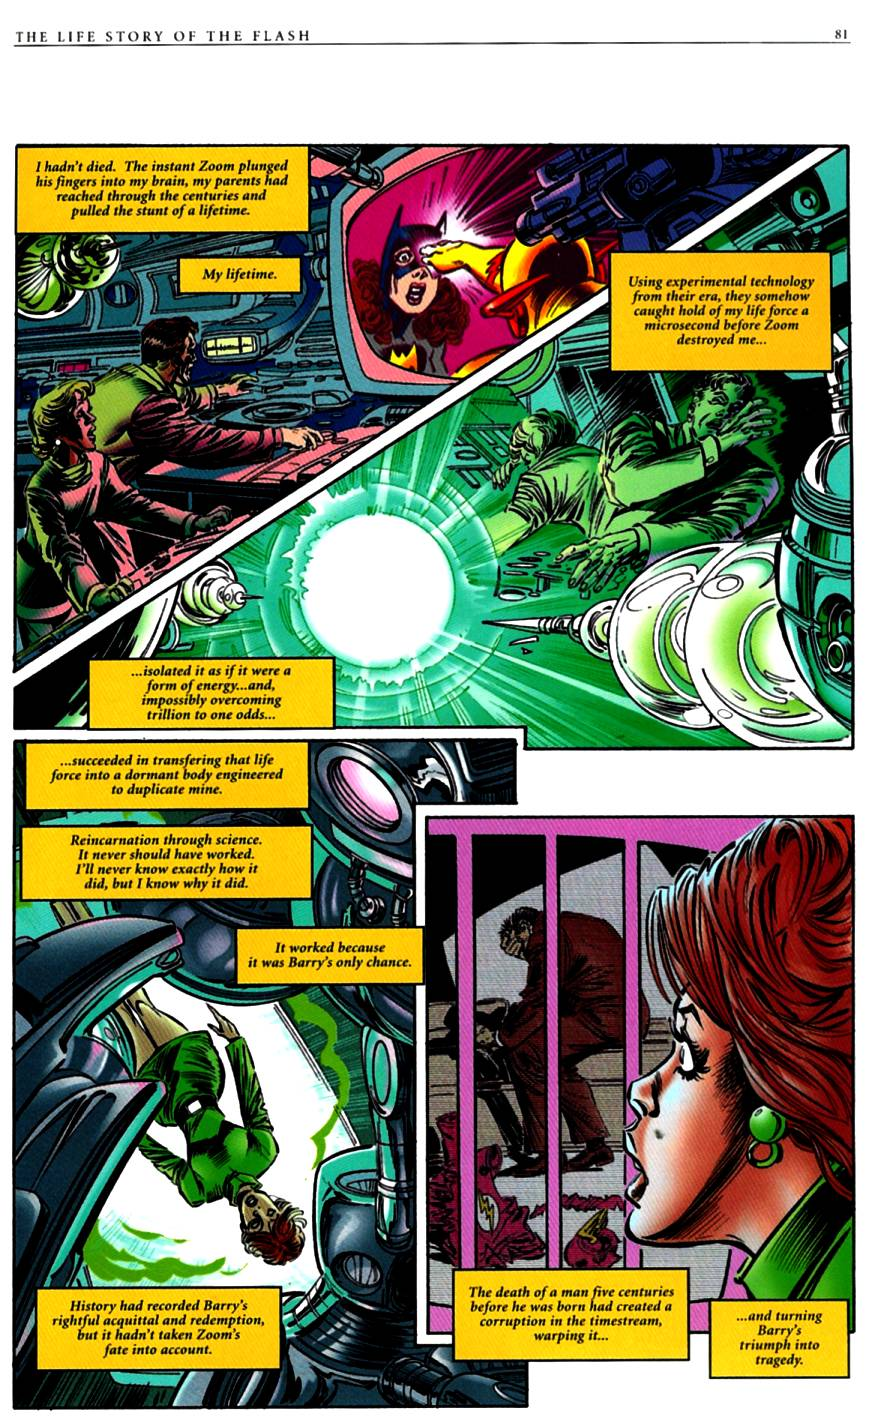 Read online The Life Story of the Flash comic -  Issue # Full - 83